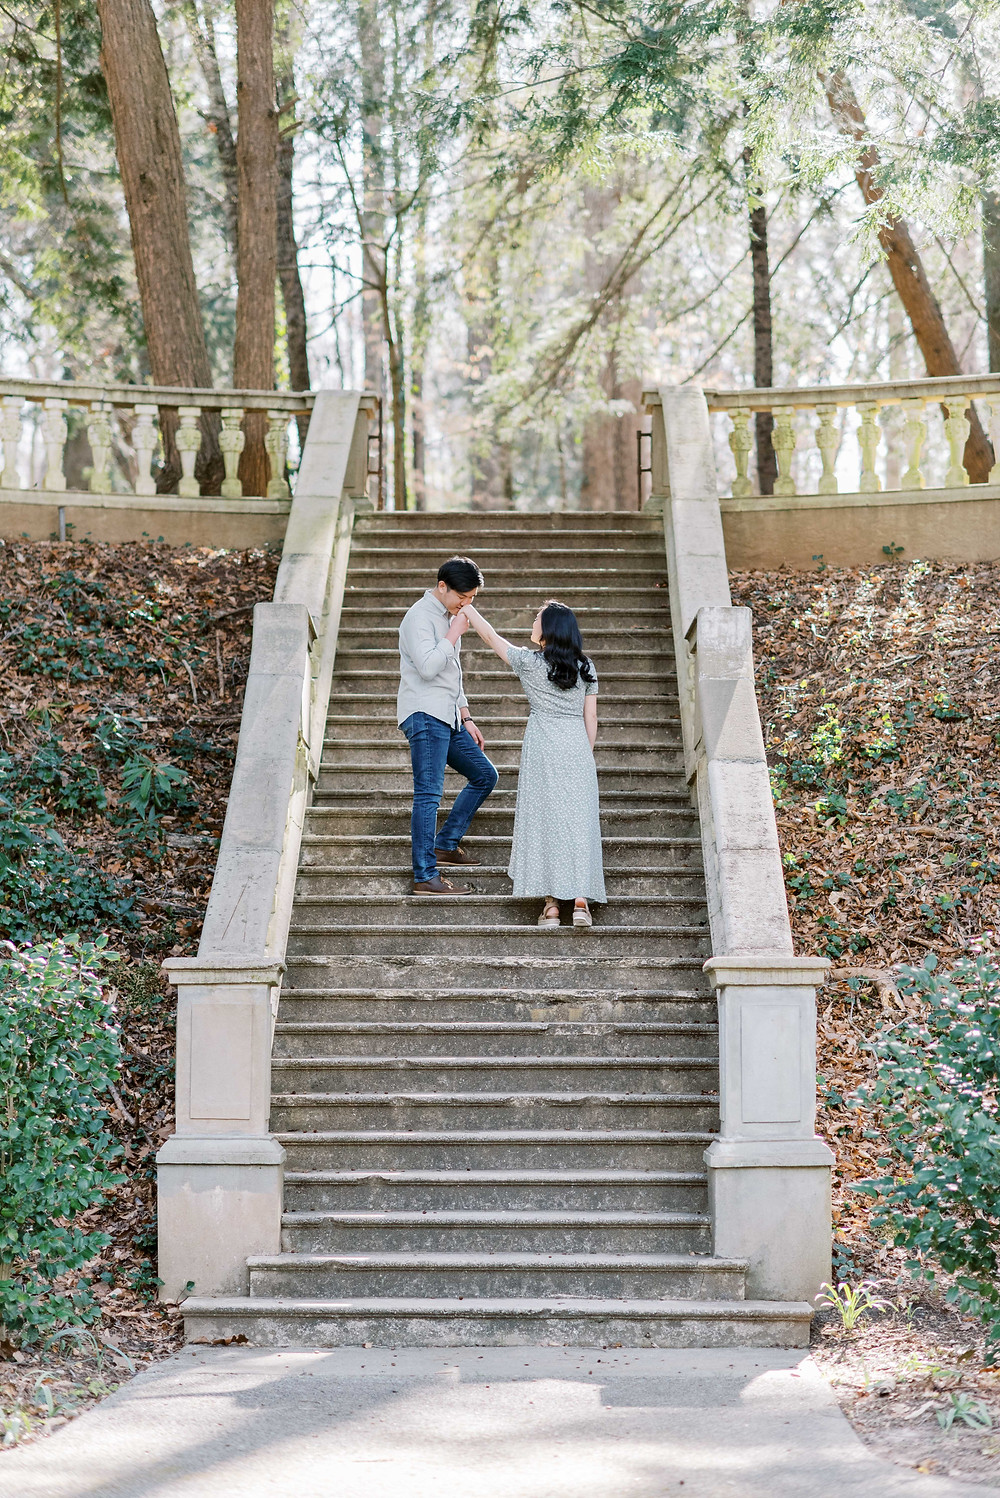 A Whimsical Cator Woolford Garden Engagement Session in the Spring grand staircase